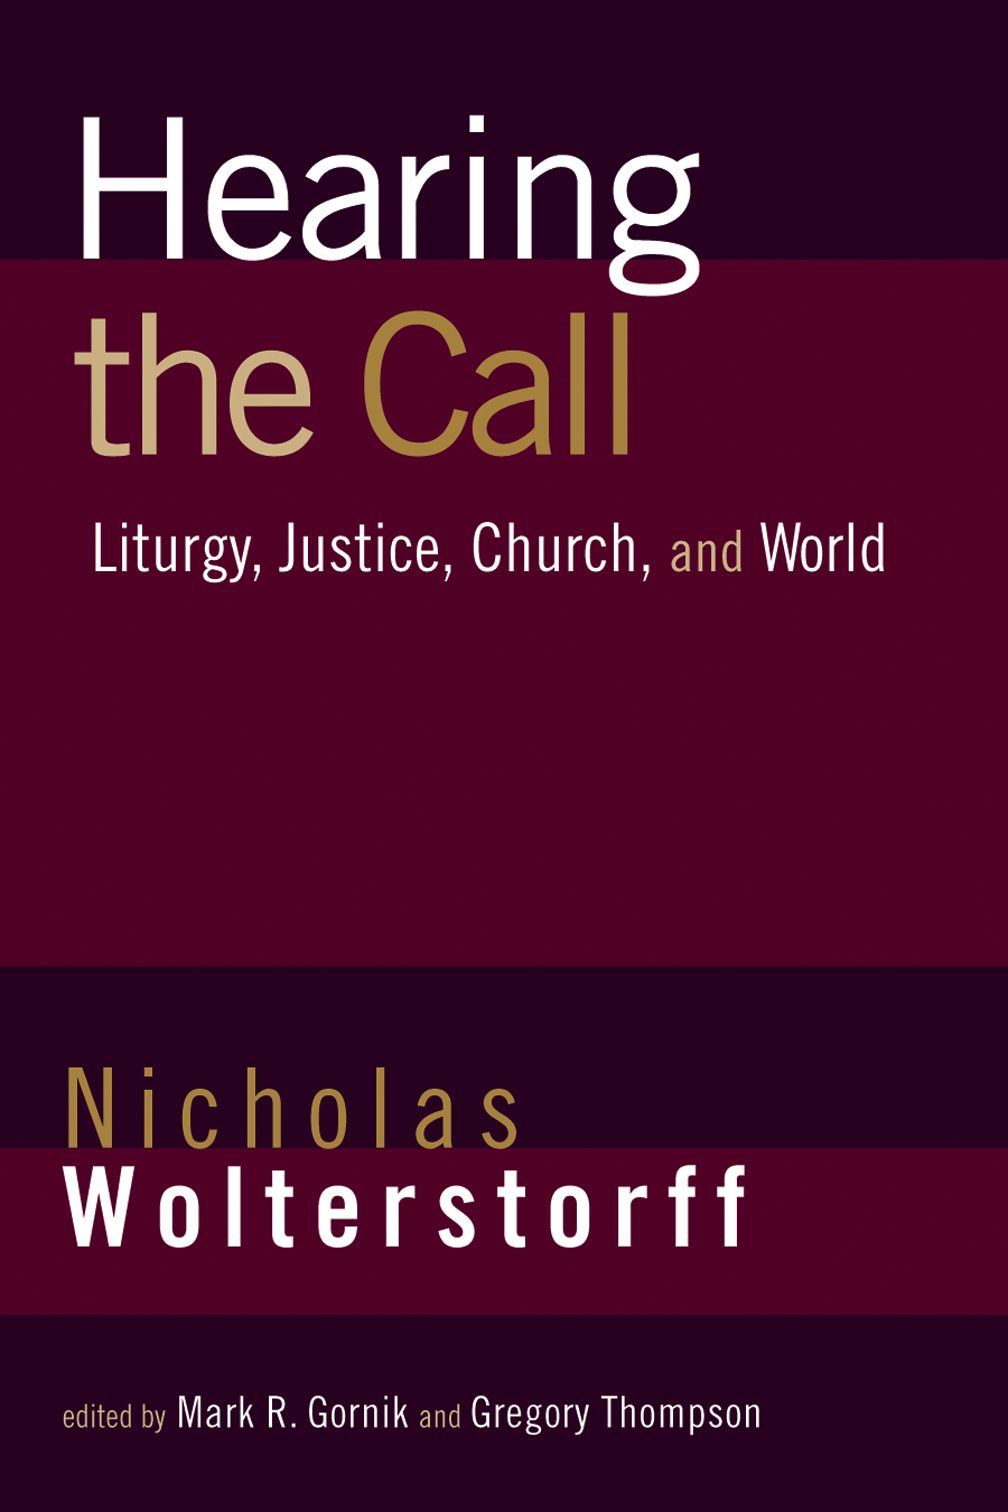 Hearing the Call: Liturgy, Justice, Church, and World